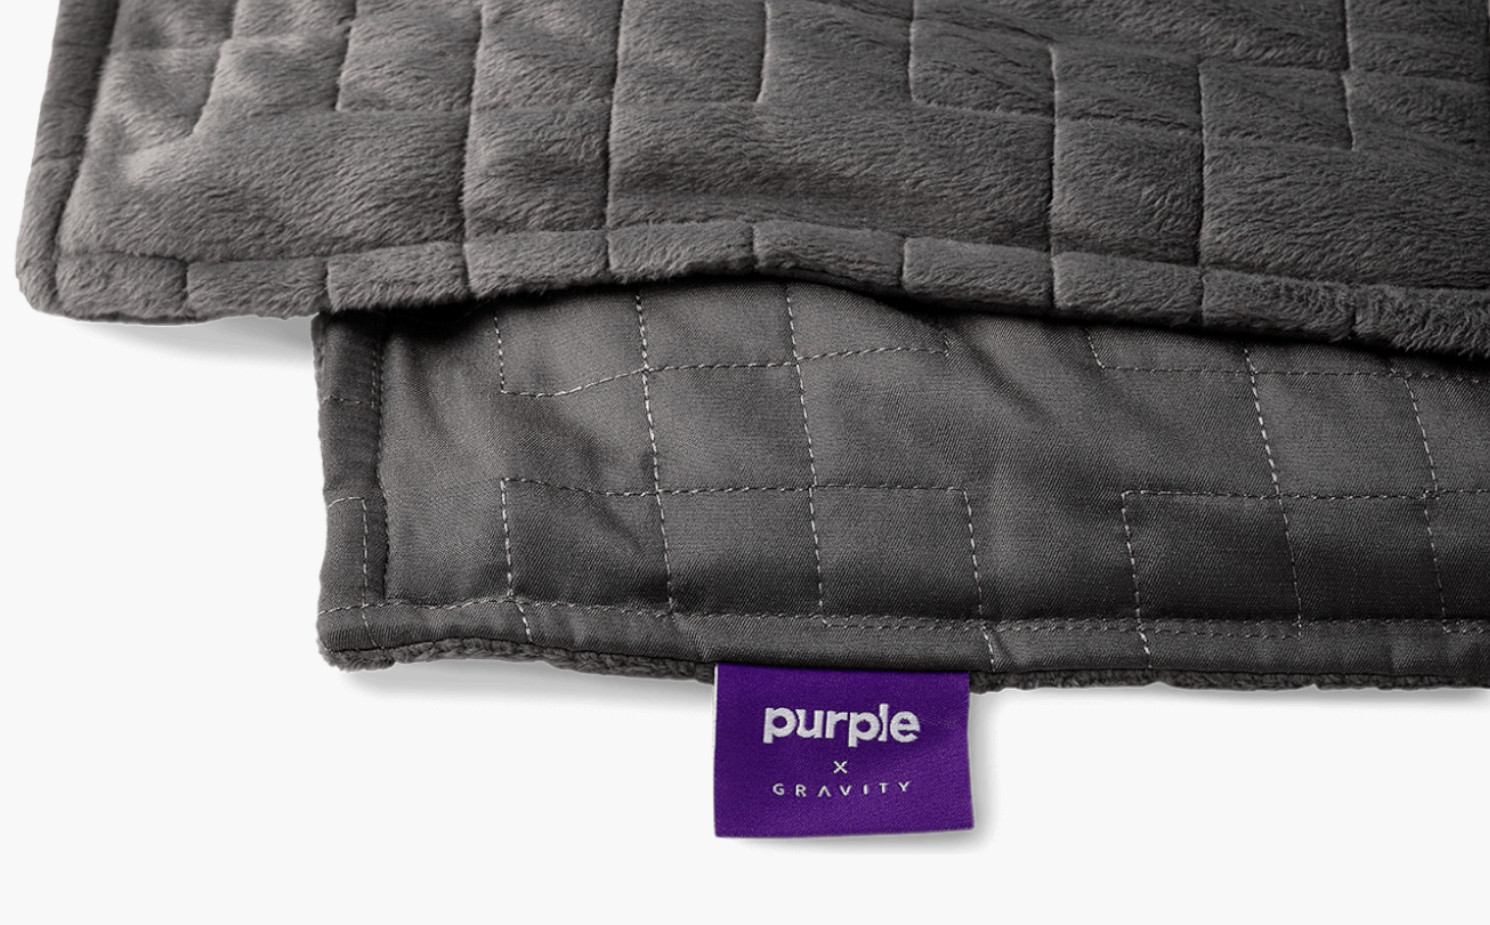 polyester weighted blanket reivew